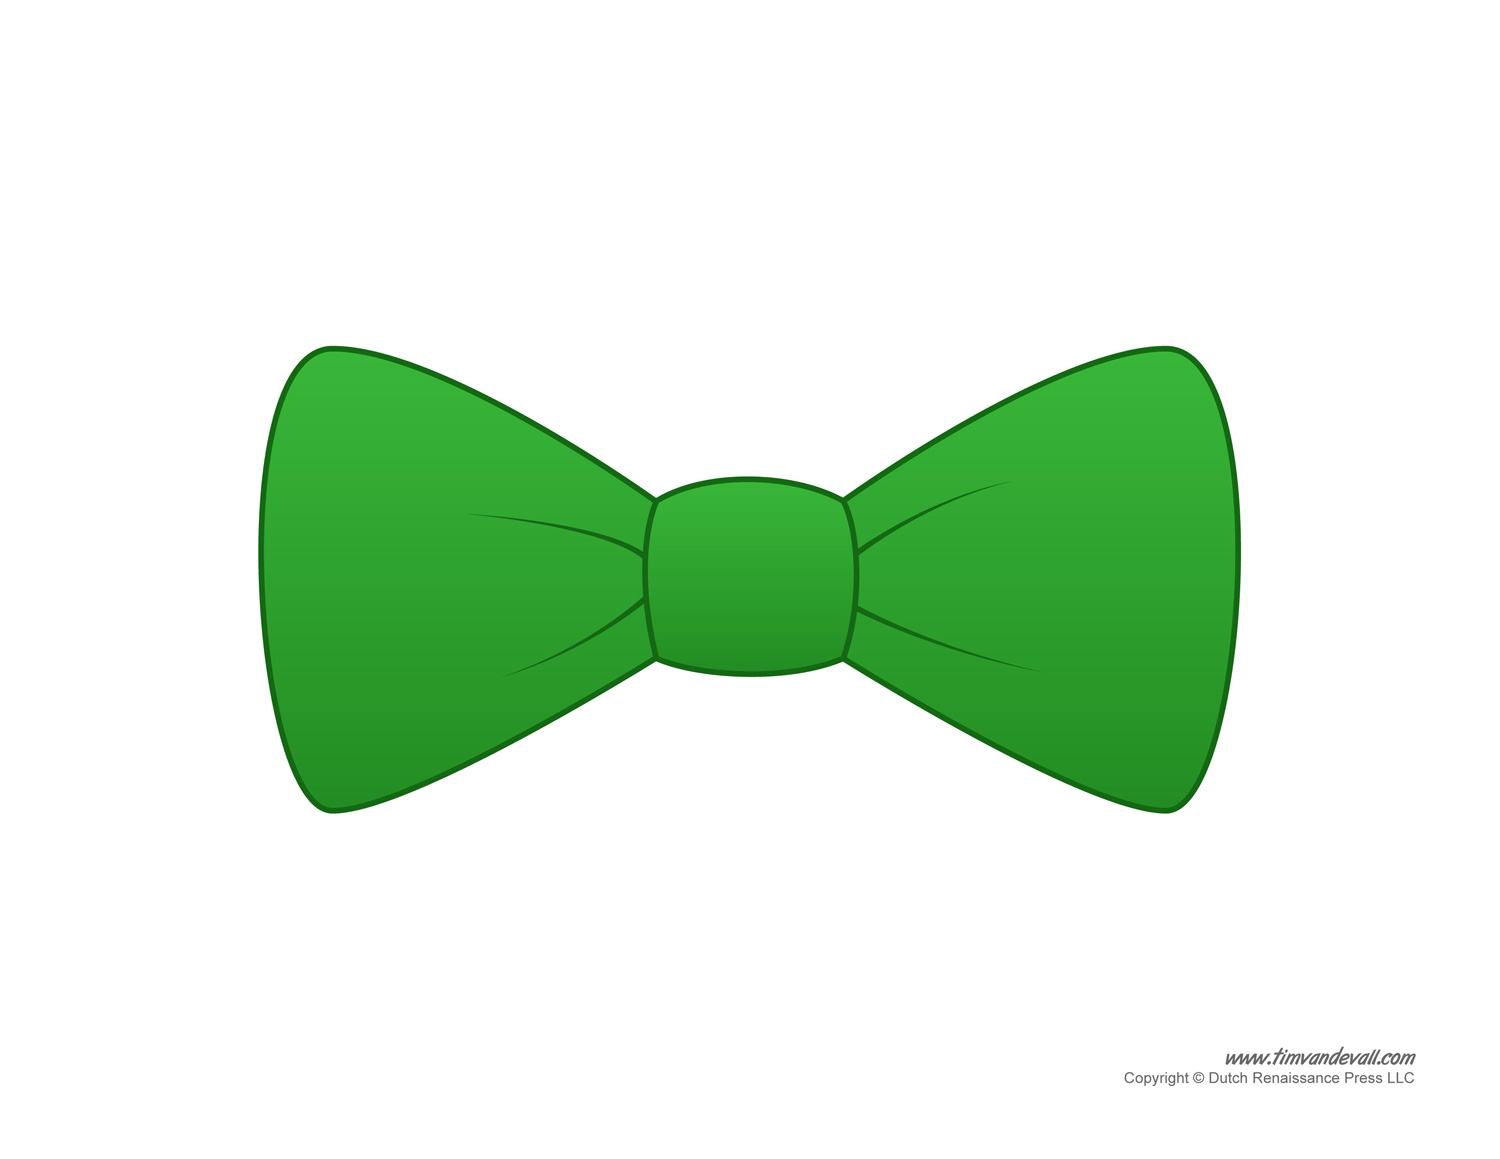 bow tie paper template - Incep.imagine-ex.co